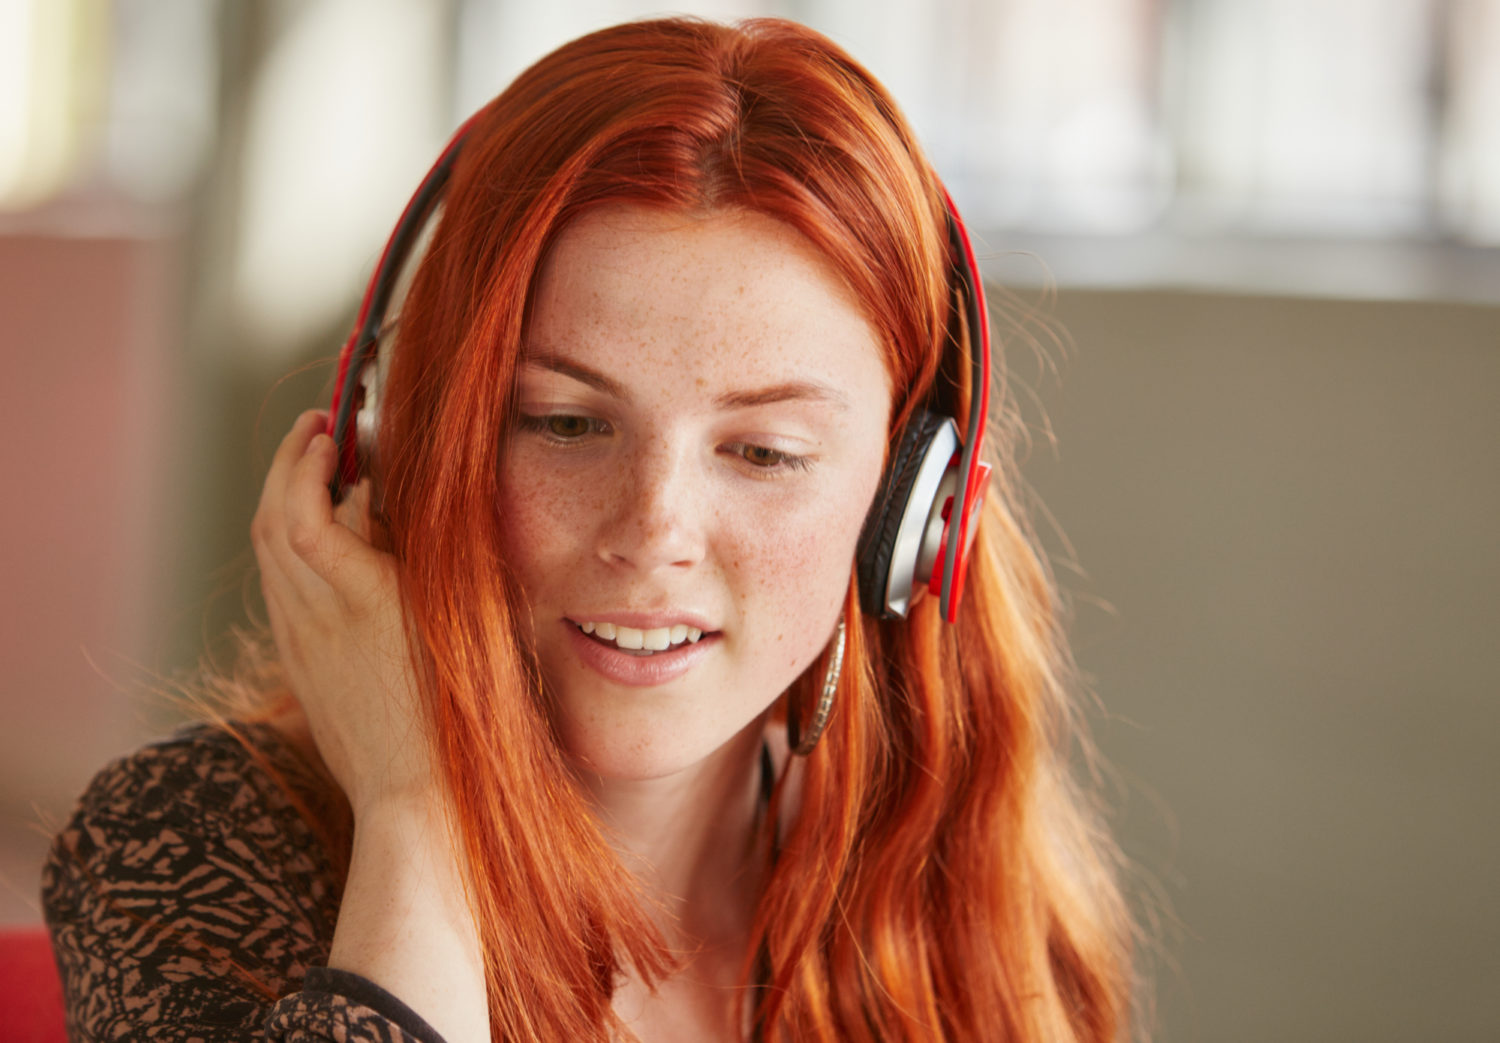 9 Best Podcasts for Music Lovers